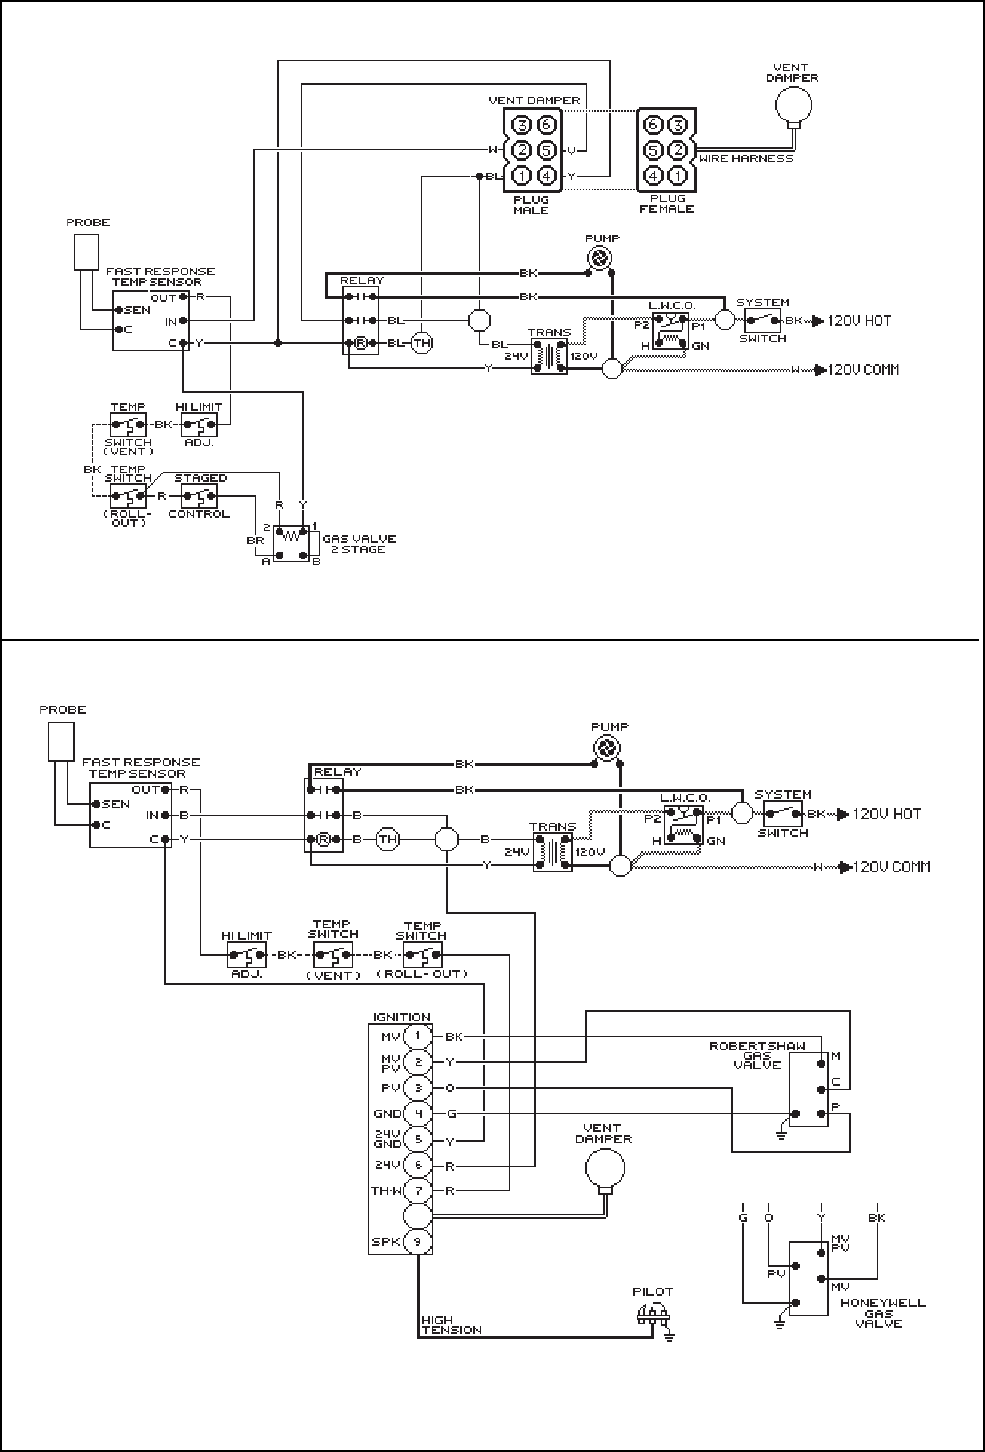 Project Network Diagram Of The Minimum Cost Solution For Manual Guide